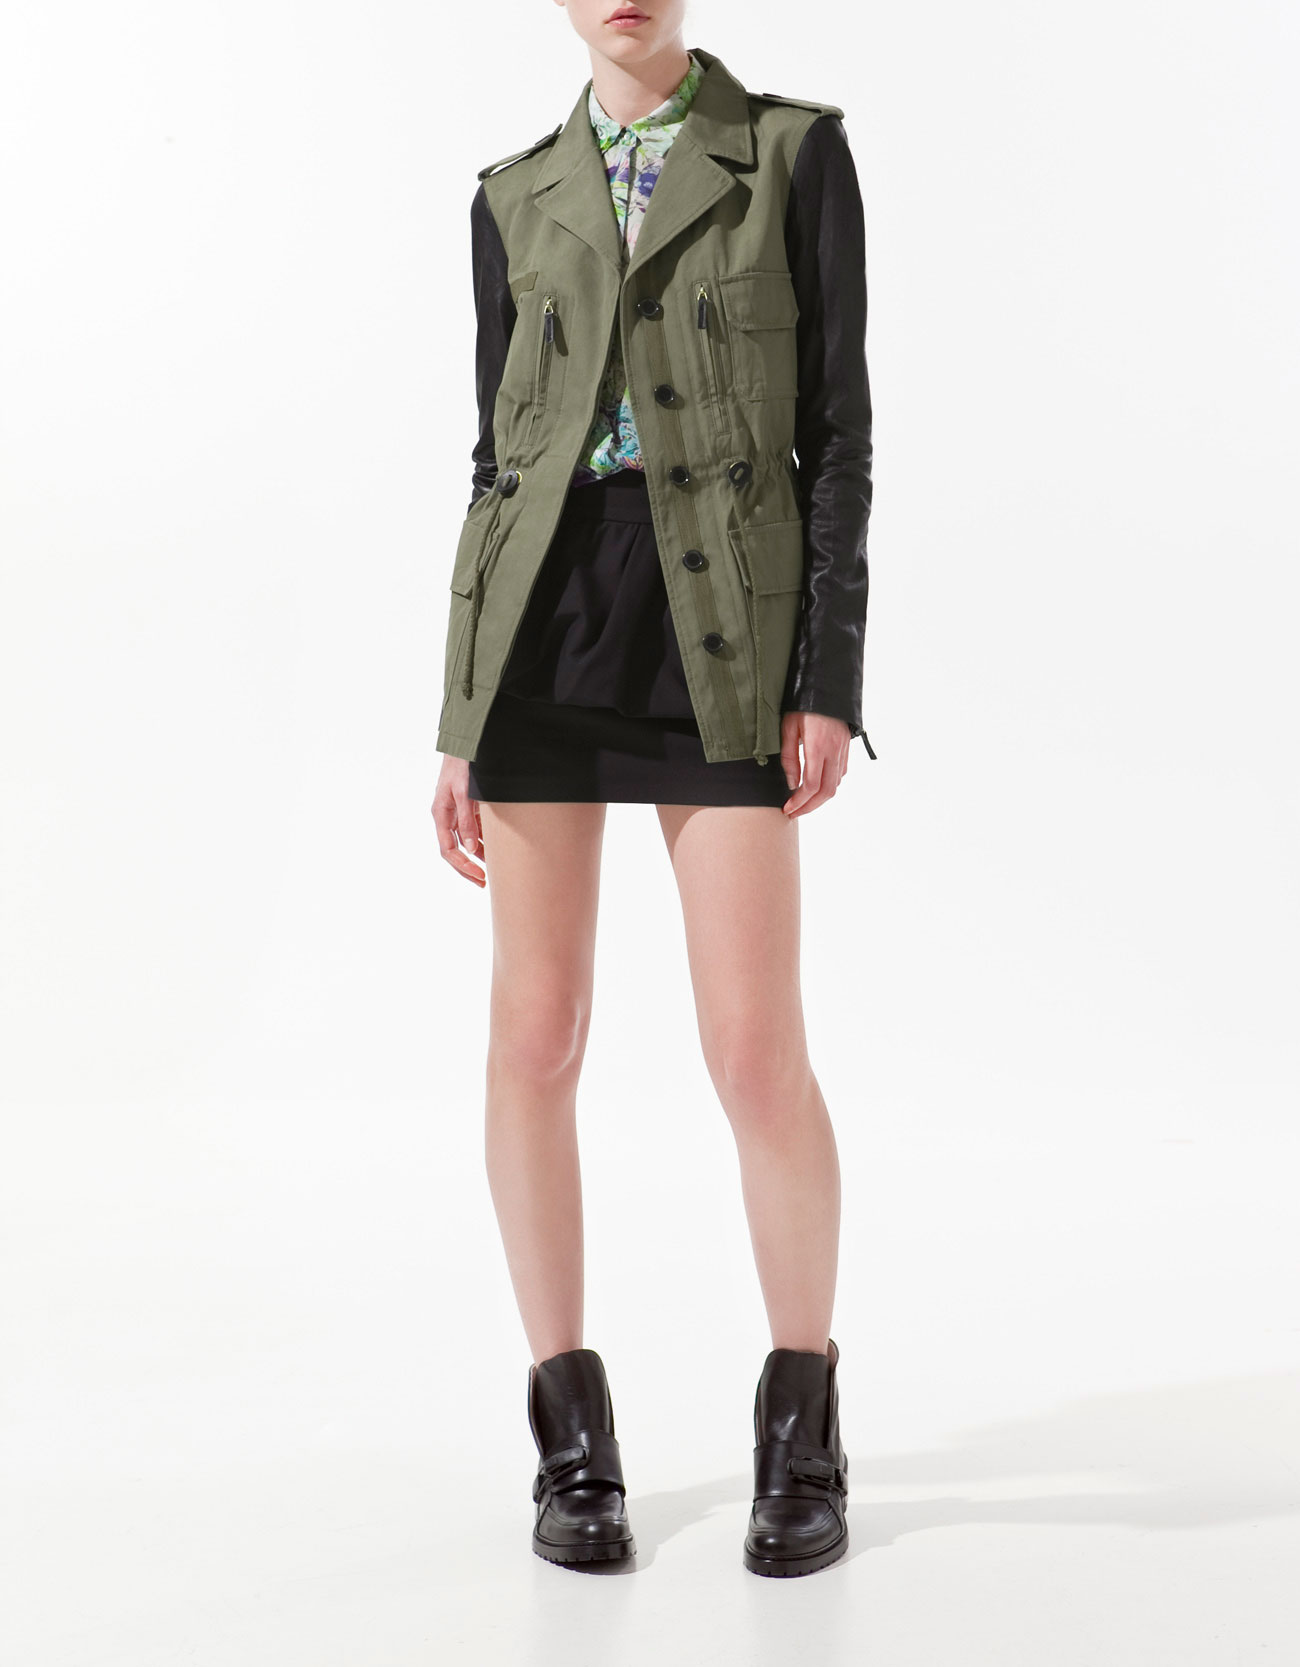 Safari Jacket with Leather Sleeves by Zara